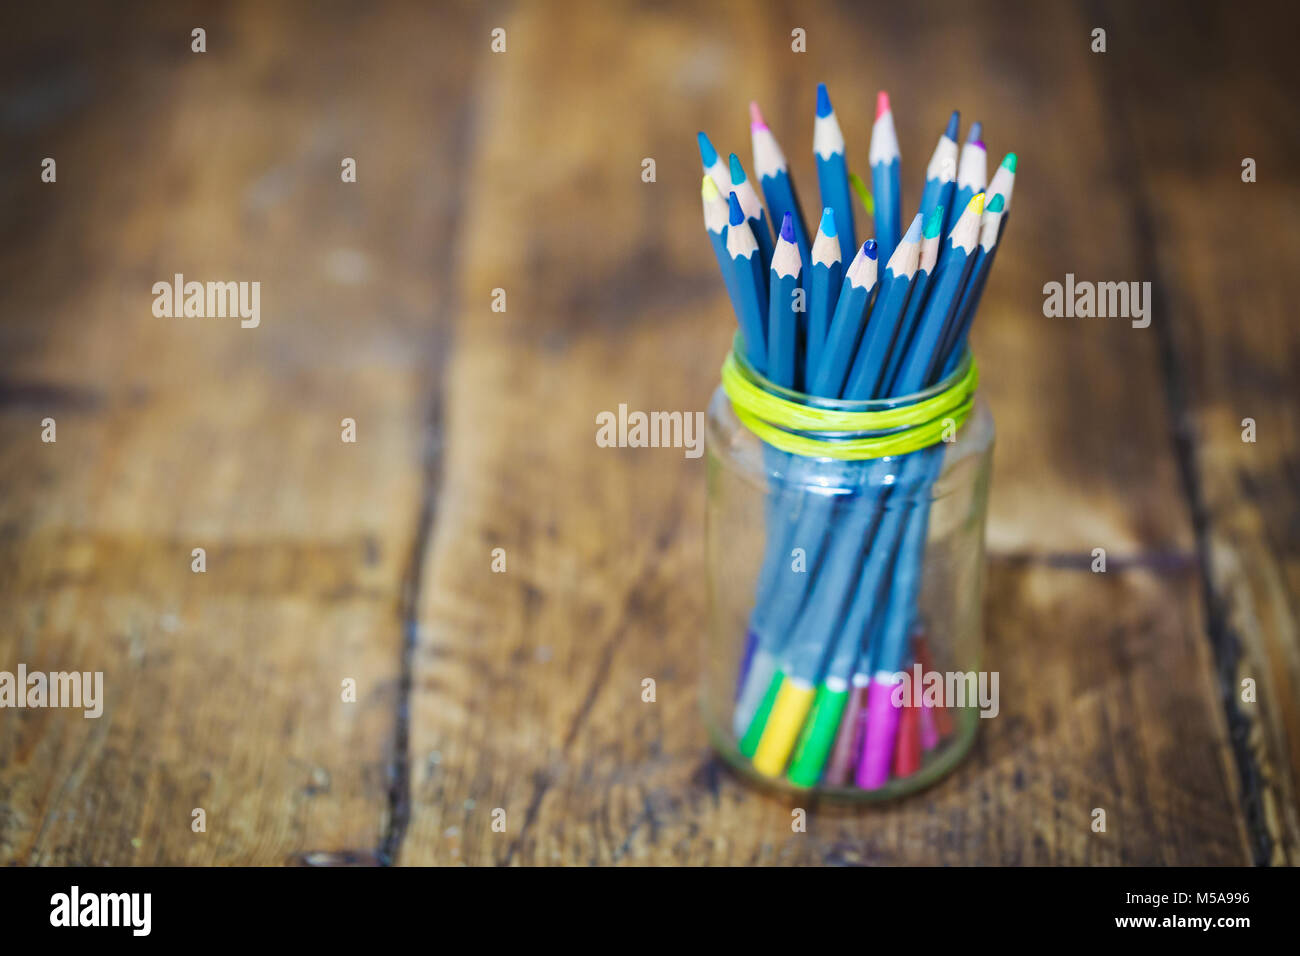 Close up of a glsas jar with blue colouring pencils on wooden table. - Stock Image